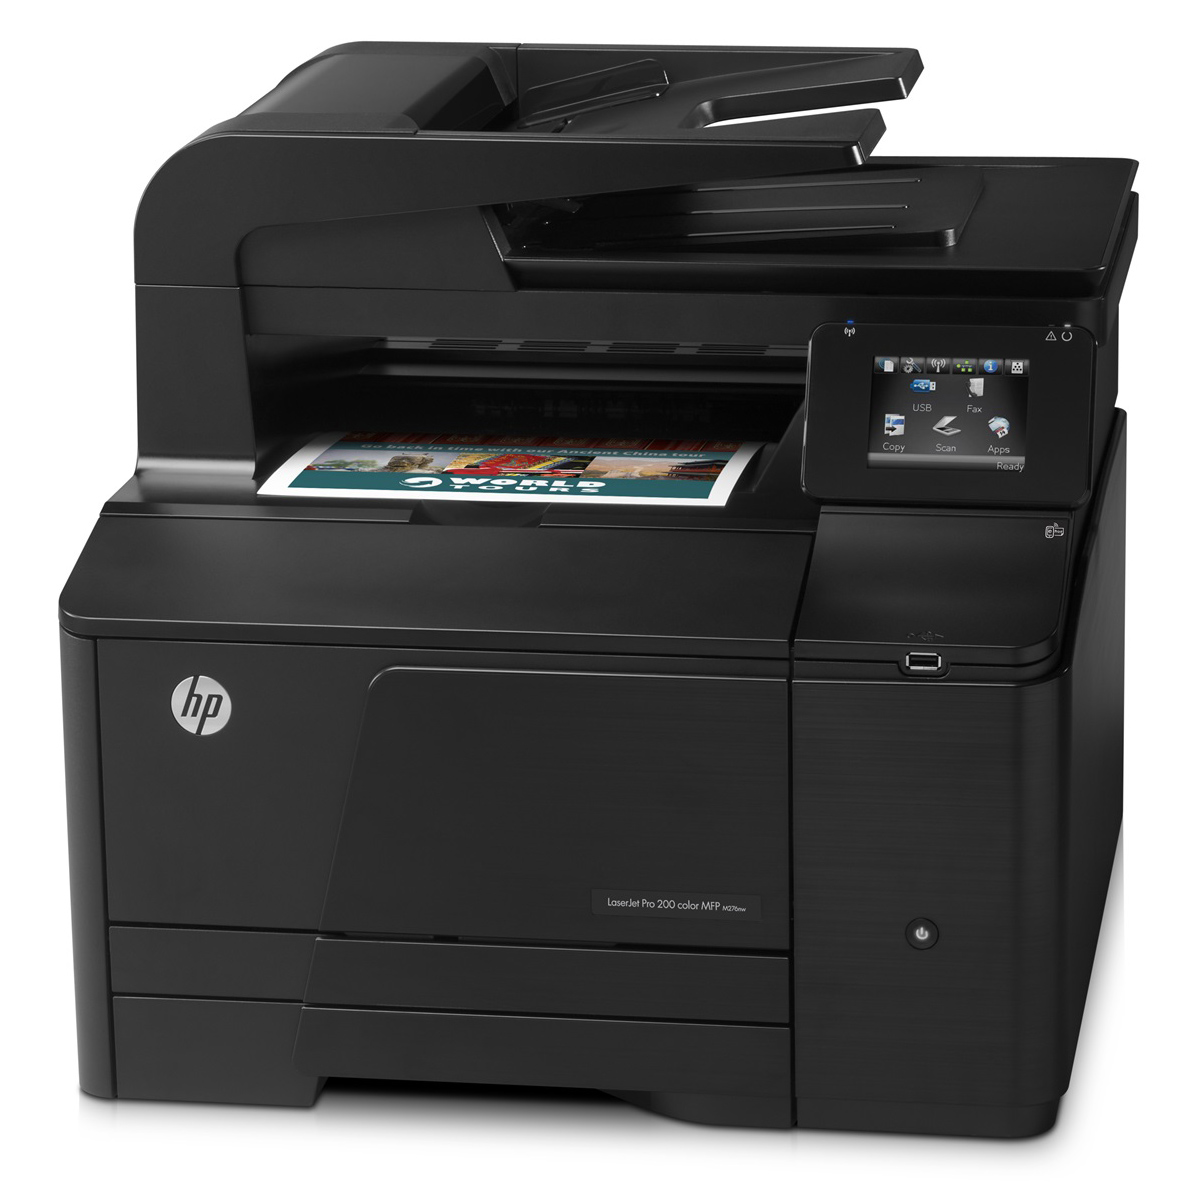 hp laserjet pro 200 color mfp m276nw cf145a imprimante multifonction hp sur ldlc. Black Bedroom Furniture Sets. Home Design Ideas